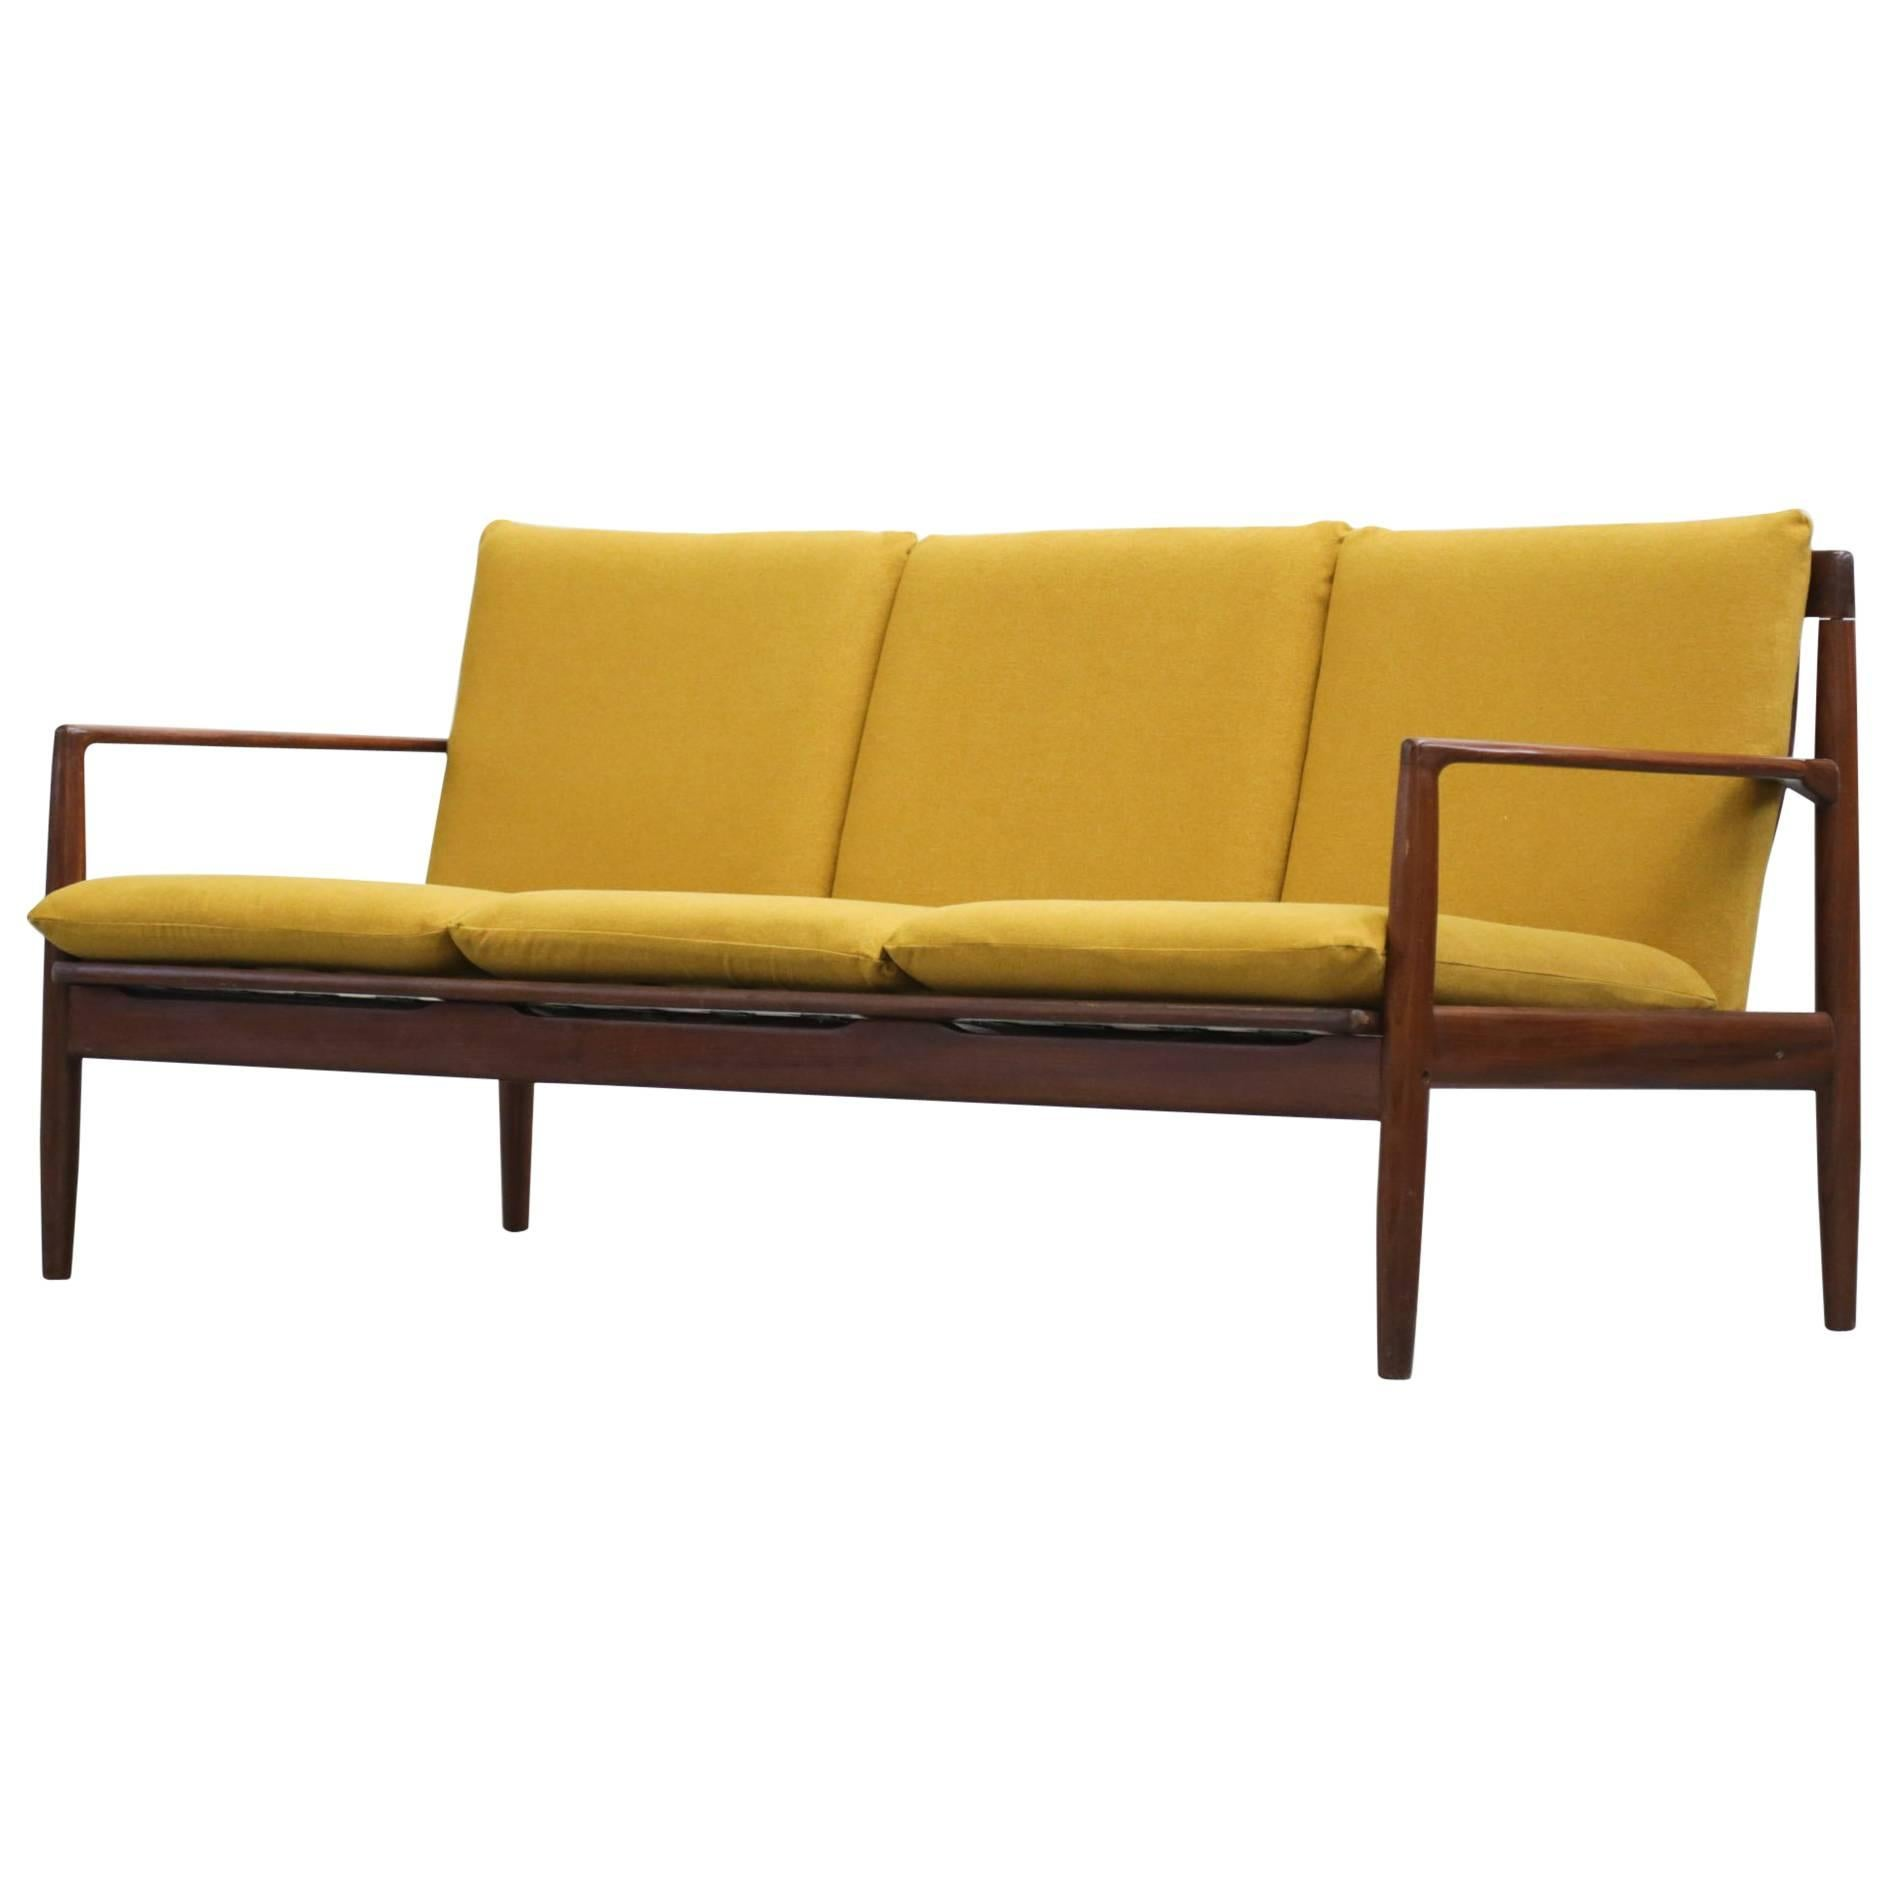 Scandinavian Sofa In The Style Of Grete Jalk, 1960s For Sale